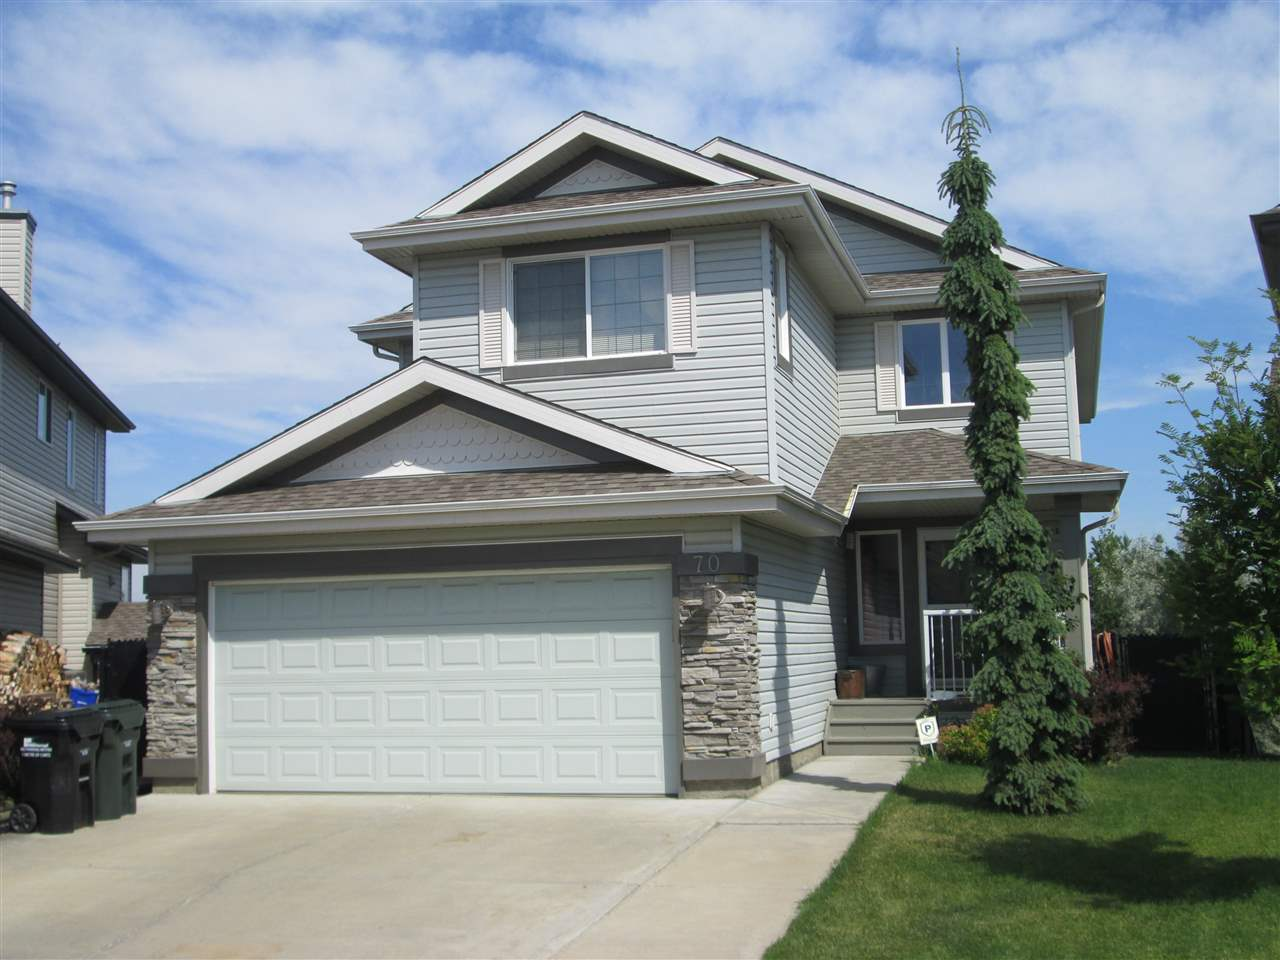 Main Photo: 70 Summercourt Terrace: Sherwood Park House for sale : MLS® # E4074783